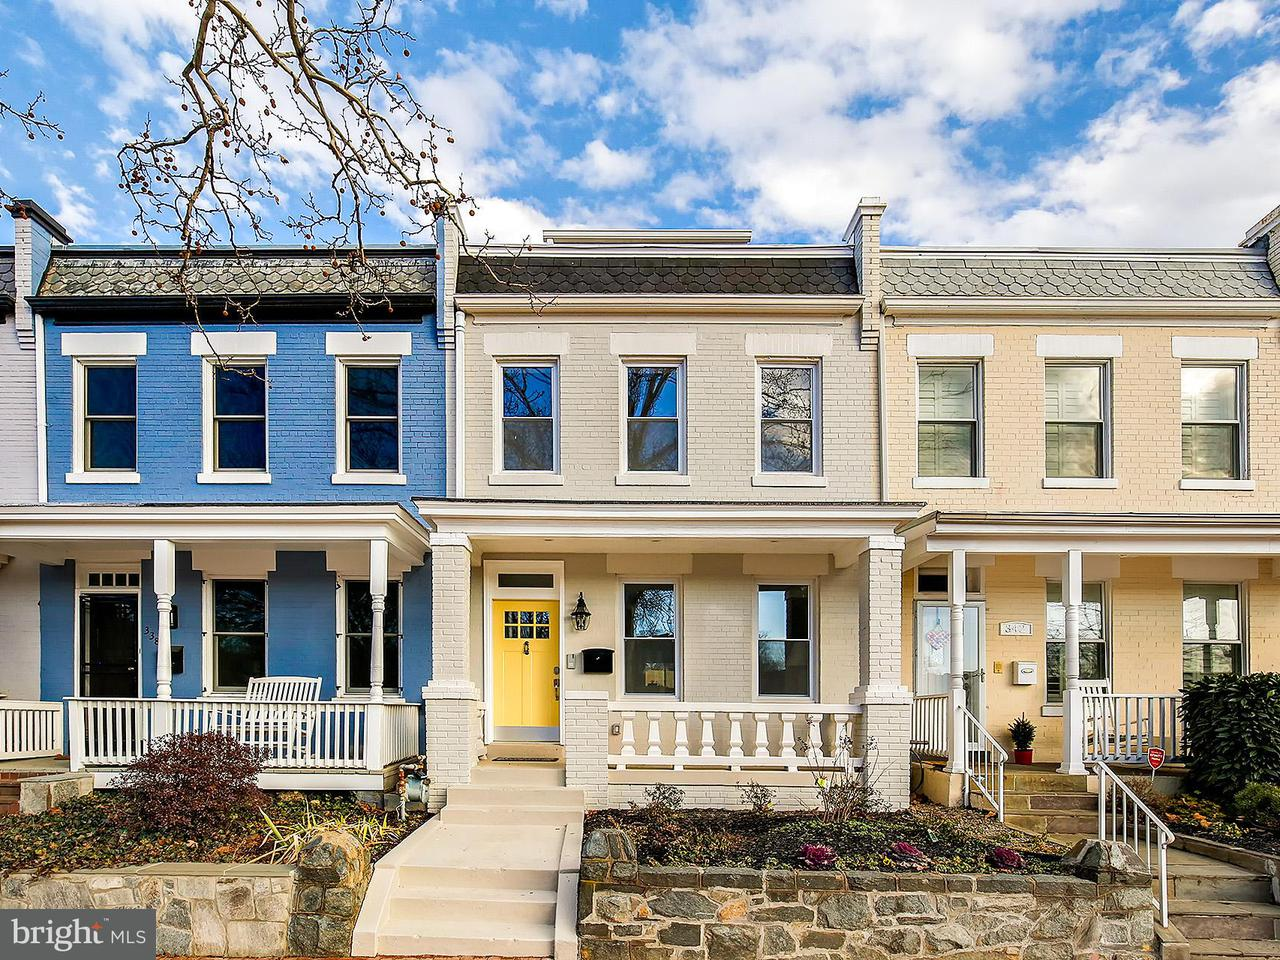 Townhouse for Sale at 340 14th St Se 340 14th St Se Washington, District Of Columbia 20003 United States